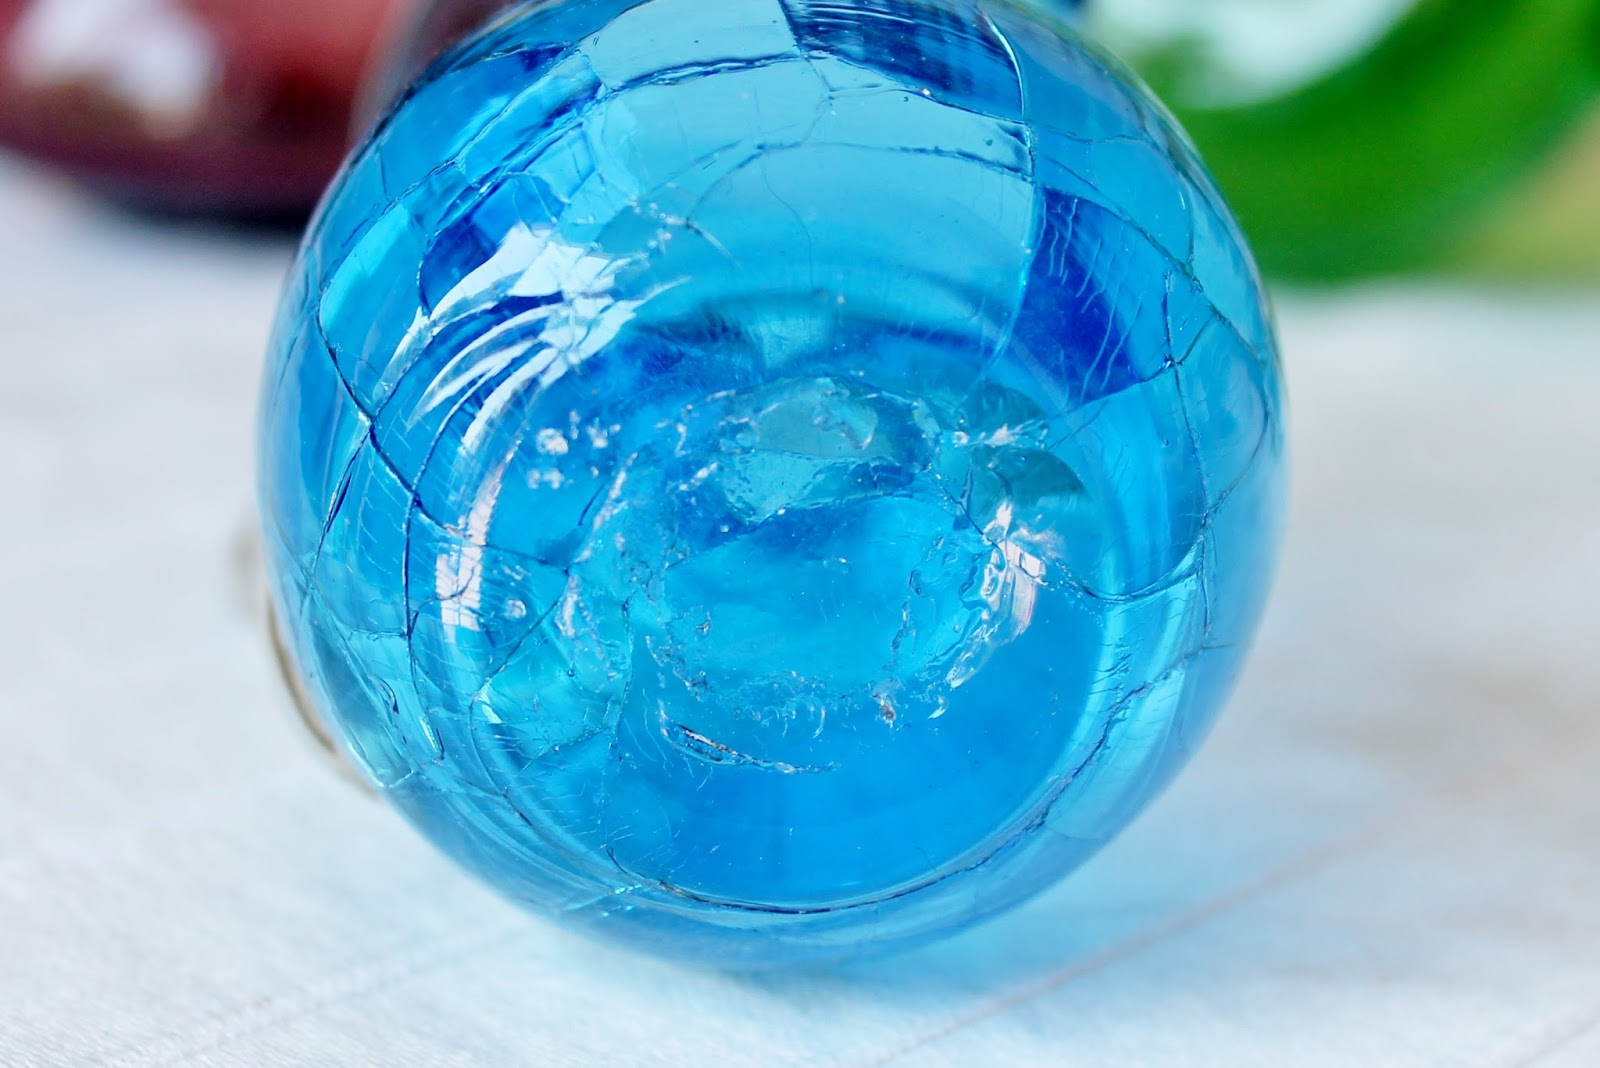 A Cool Collectible: Crackle Glass